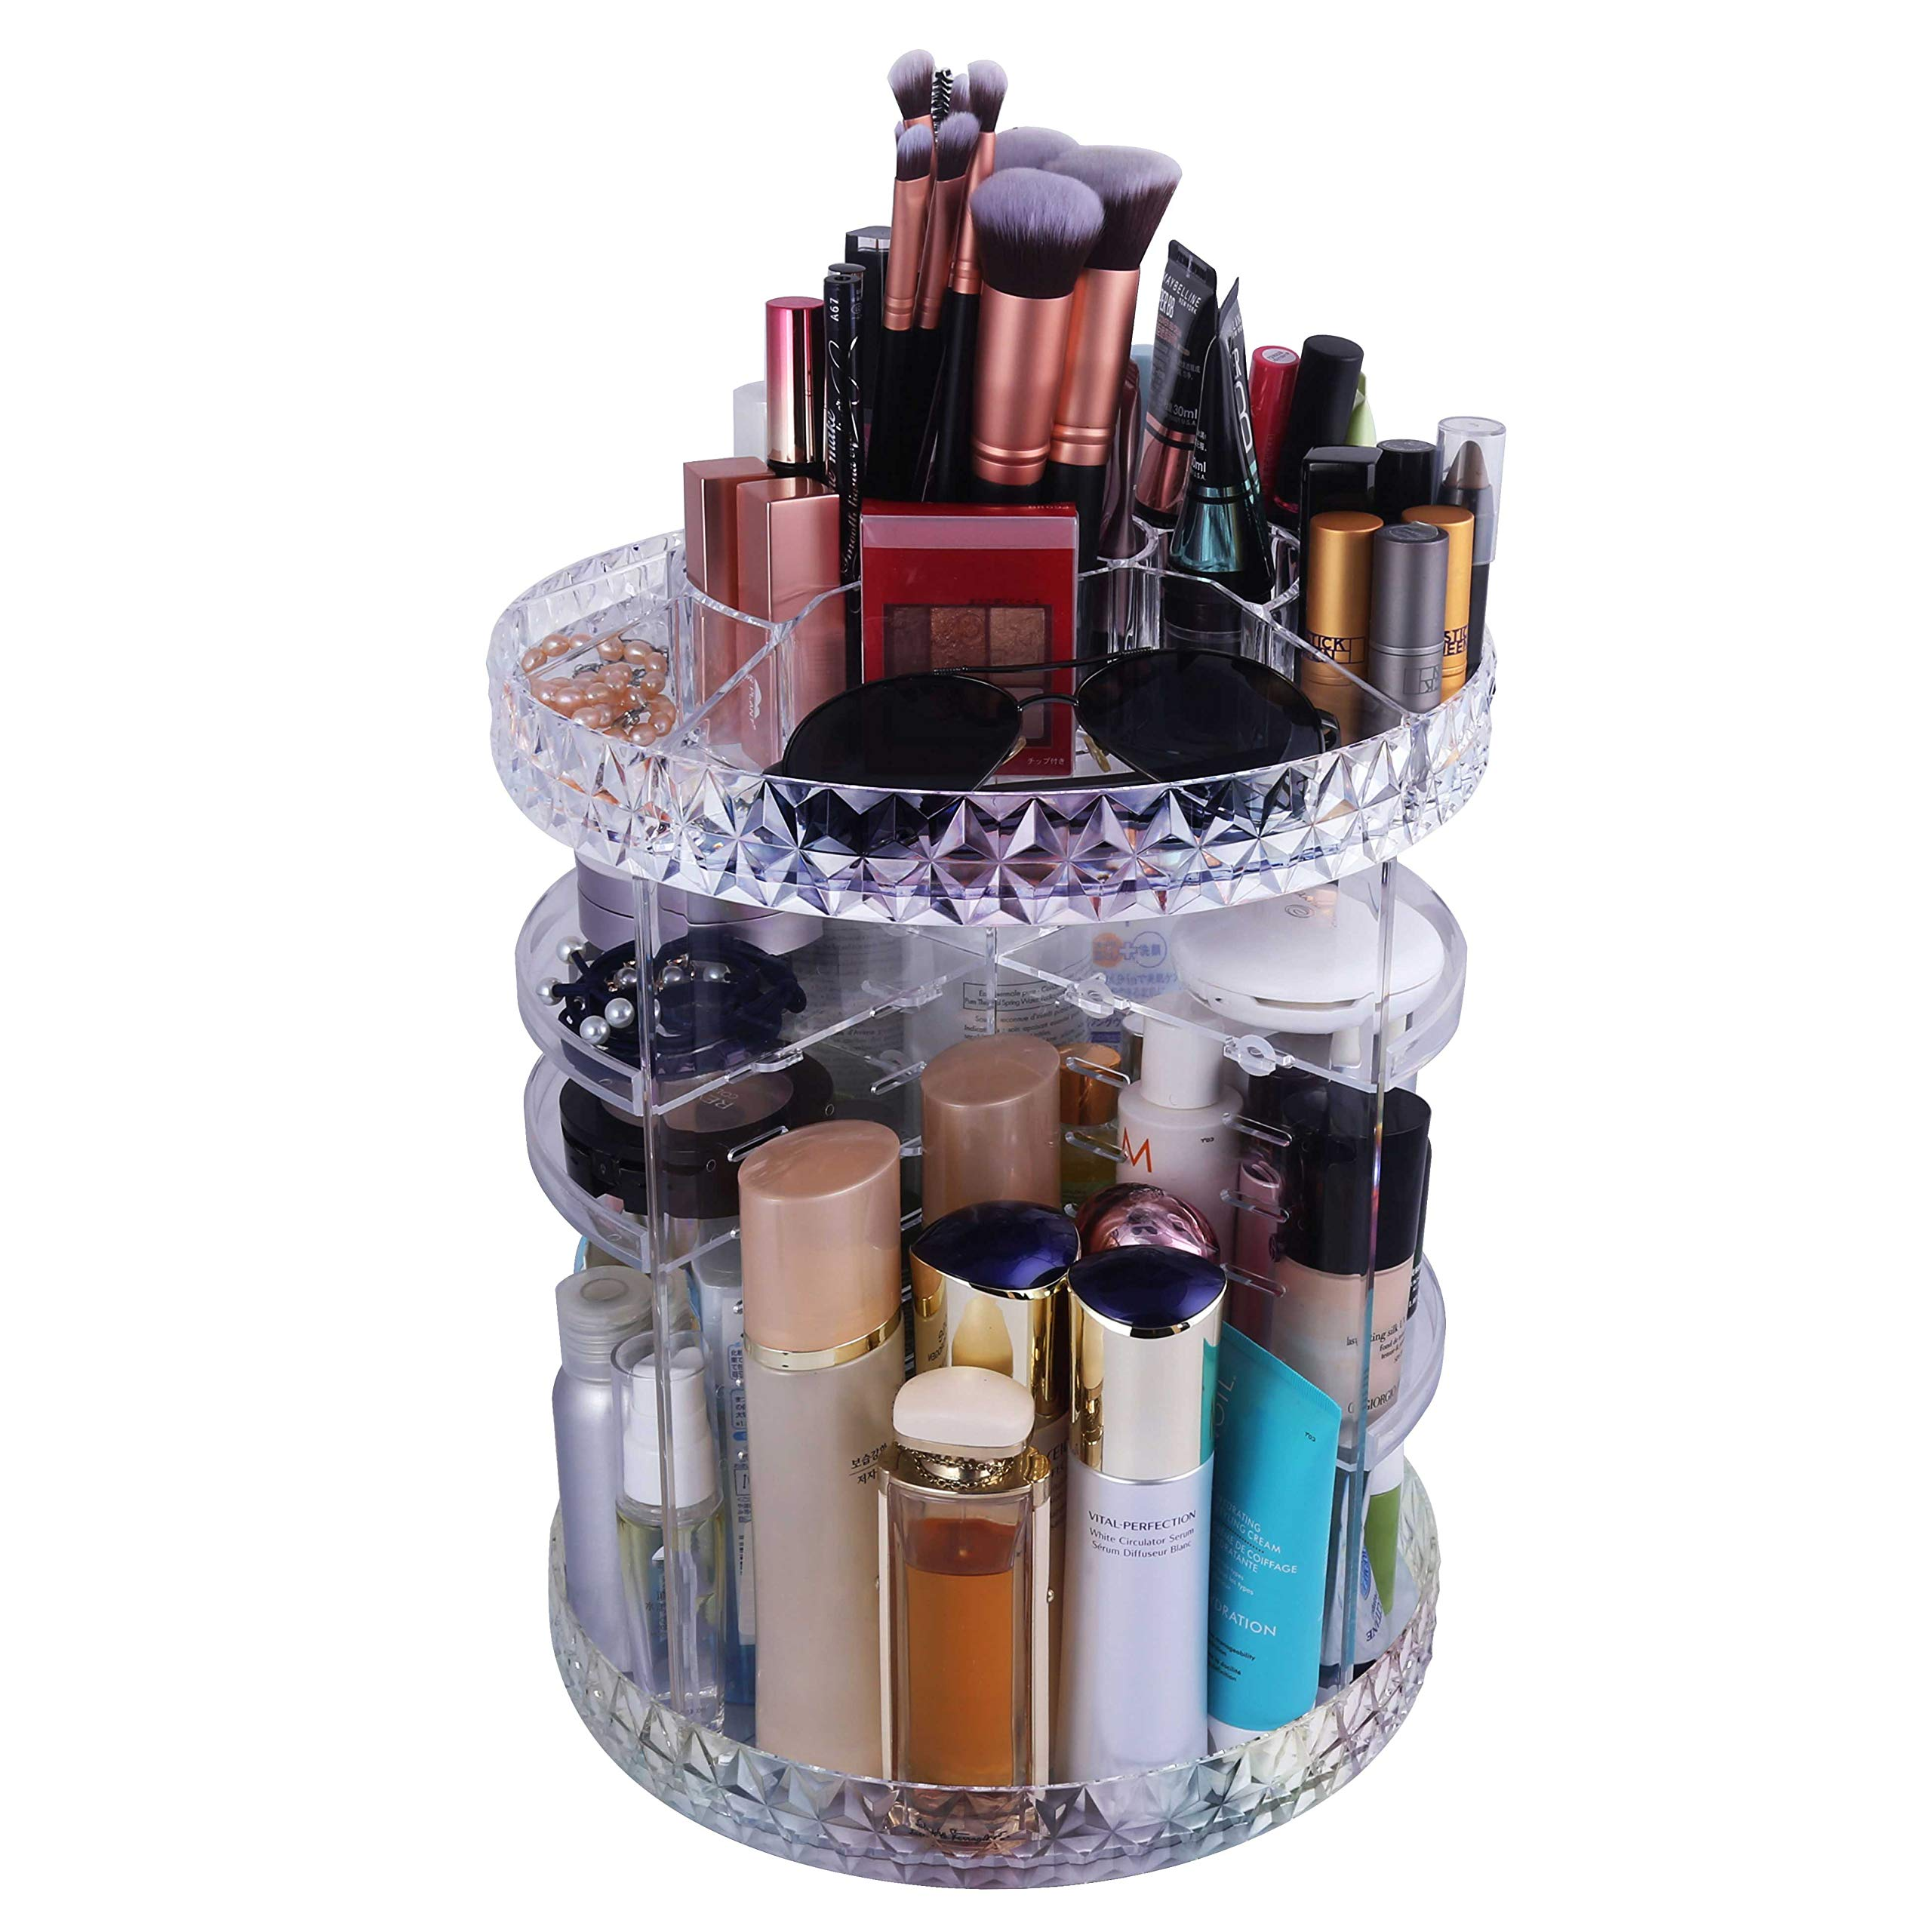 WEBI Gorgeous Acrylic Makeup Organizer: Thicken, 360̊ Rotating, Large Capacity, DYI Adjustable, Cosmetic Display Cases, Bathroom Storage & Organization, Vanity Countertop Holder (Diamond/Clear)